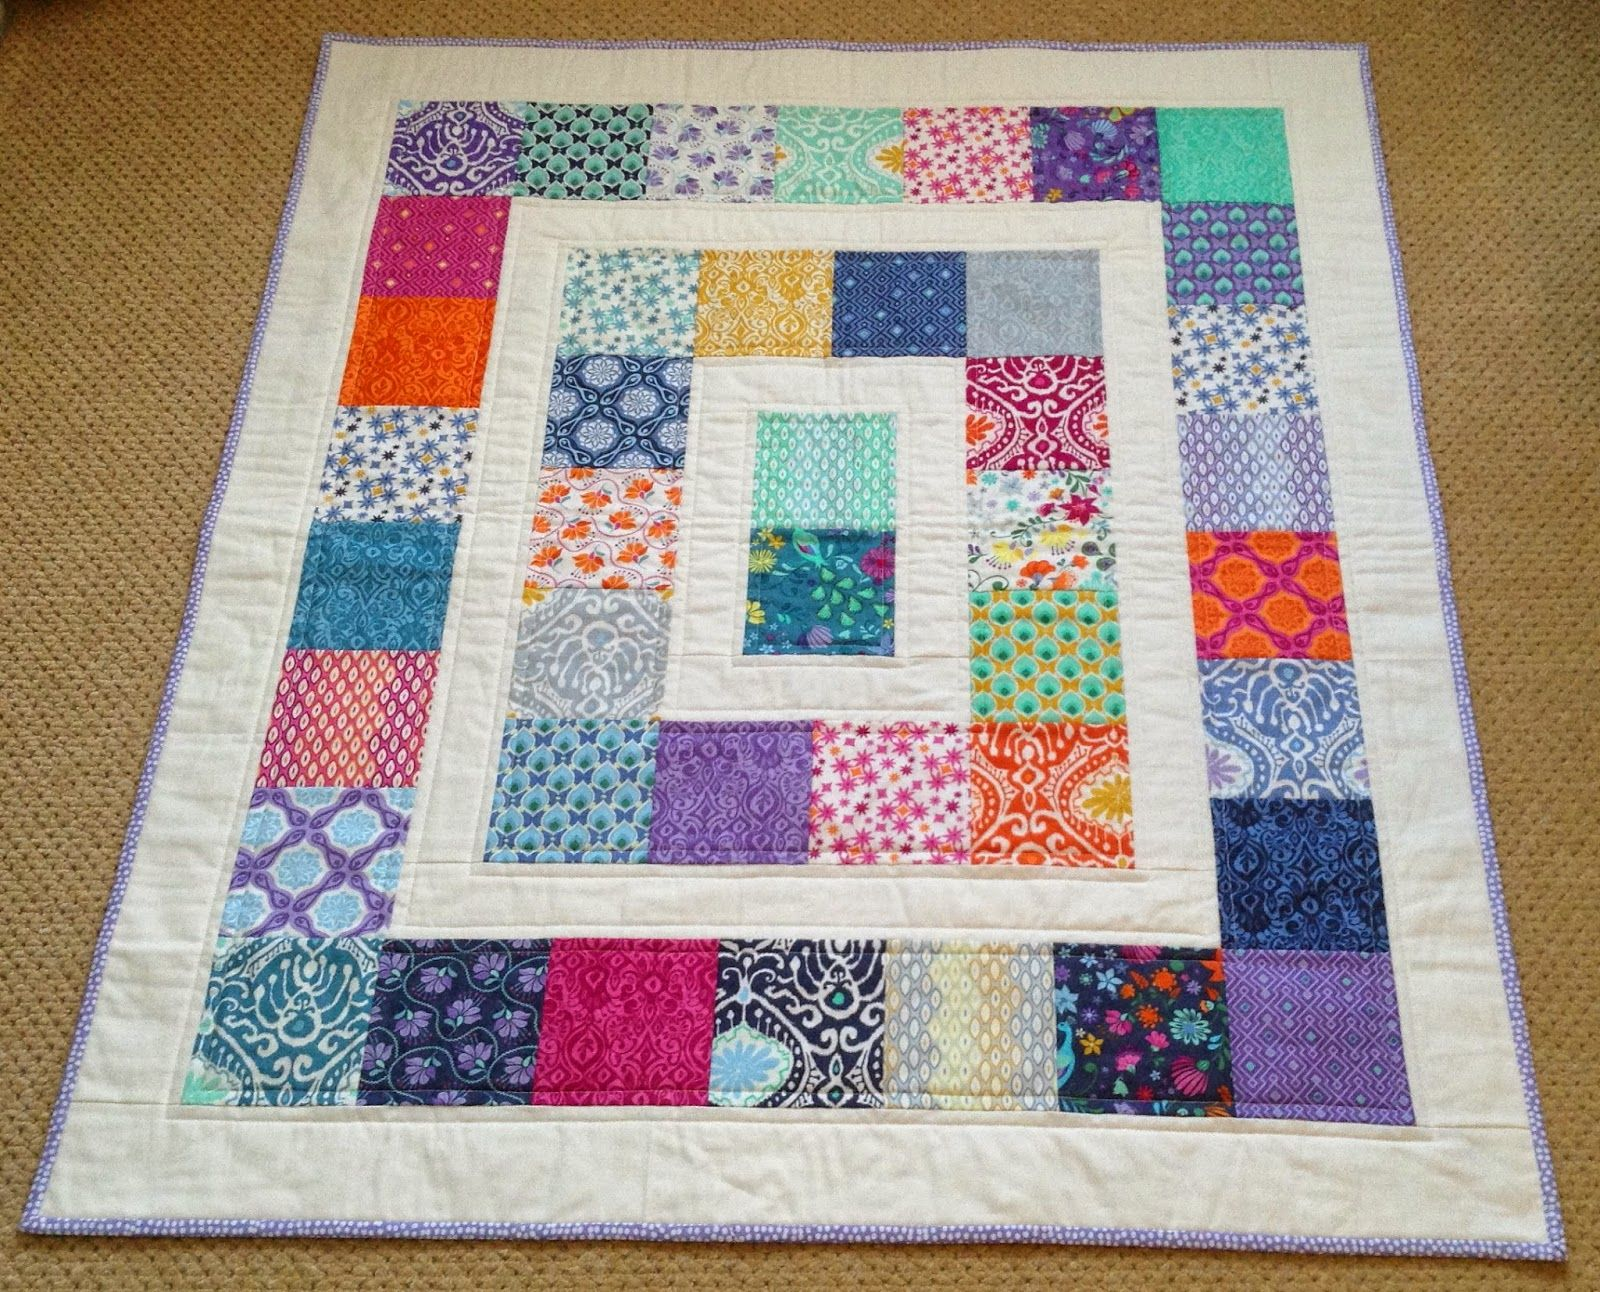 Best 25+ Charm pack quilts ideas on Pinterest   Charm pack quilt ... : baby quilt square ideas - Adamdwight.com